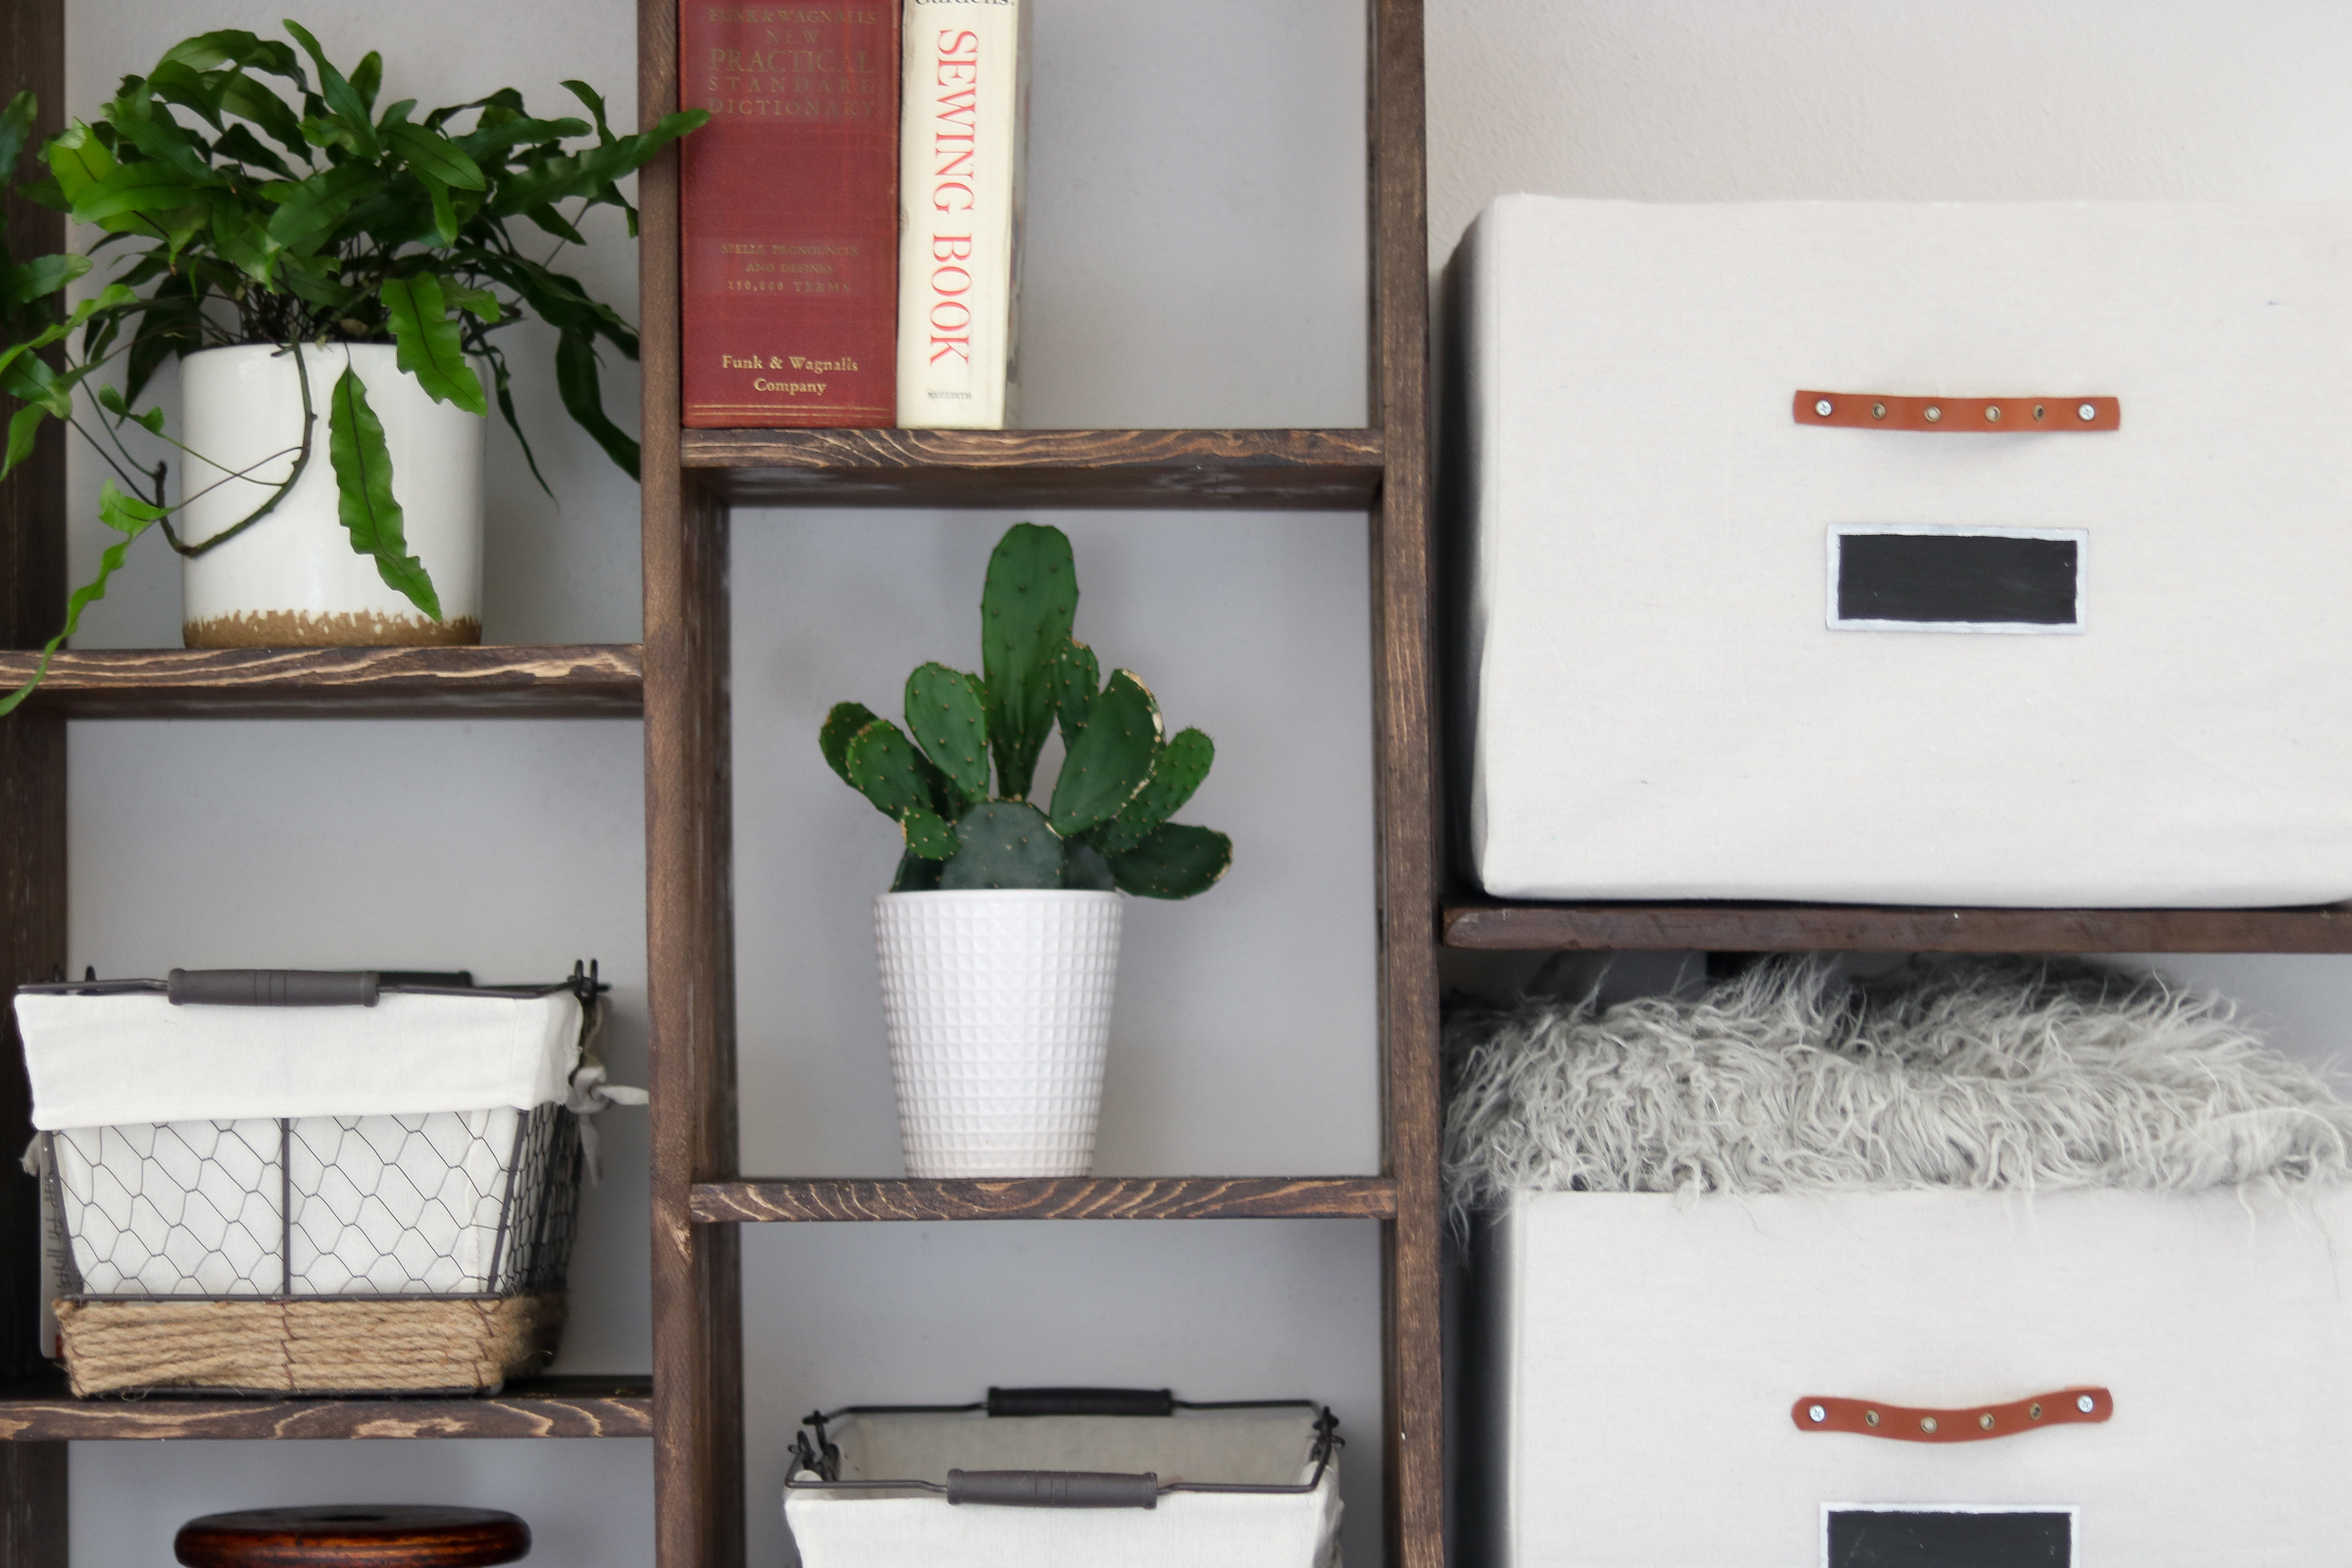 Diy Built In Shelf Storage ONLY COST LilyArdor - Diy built in shelves